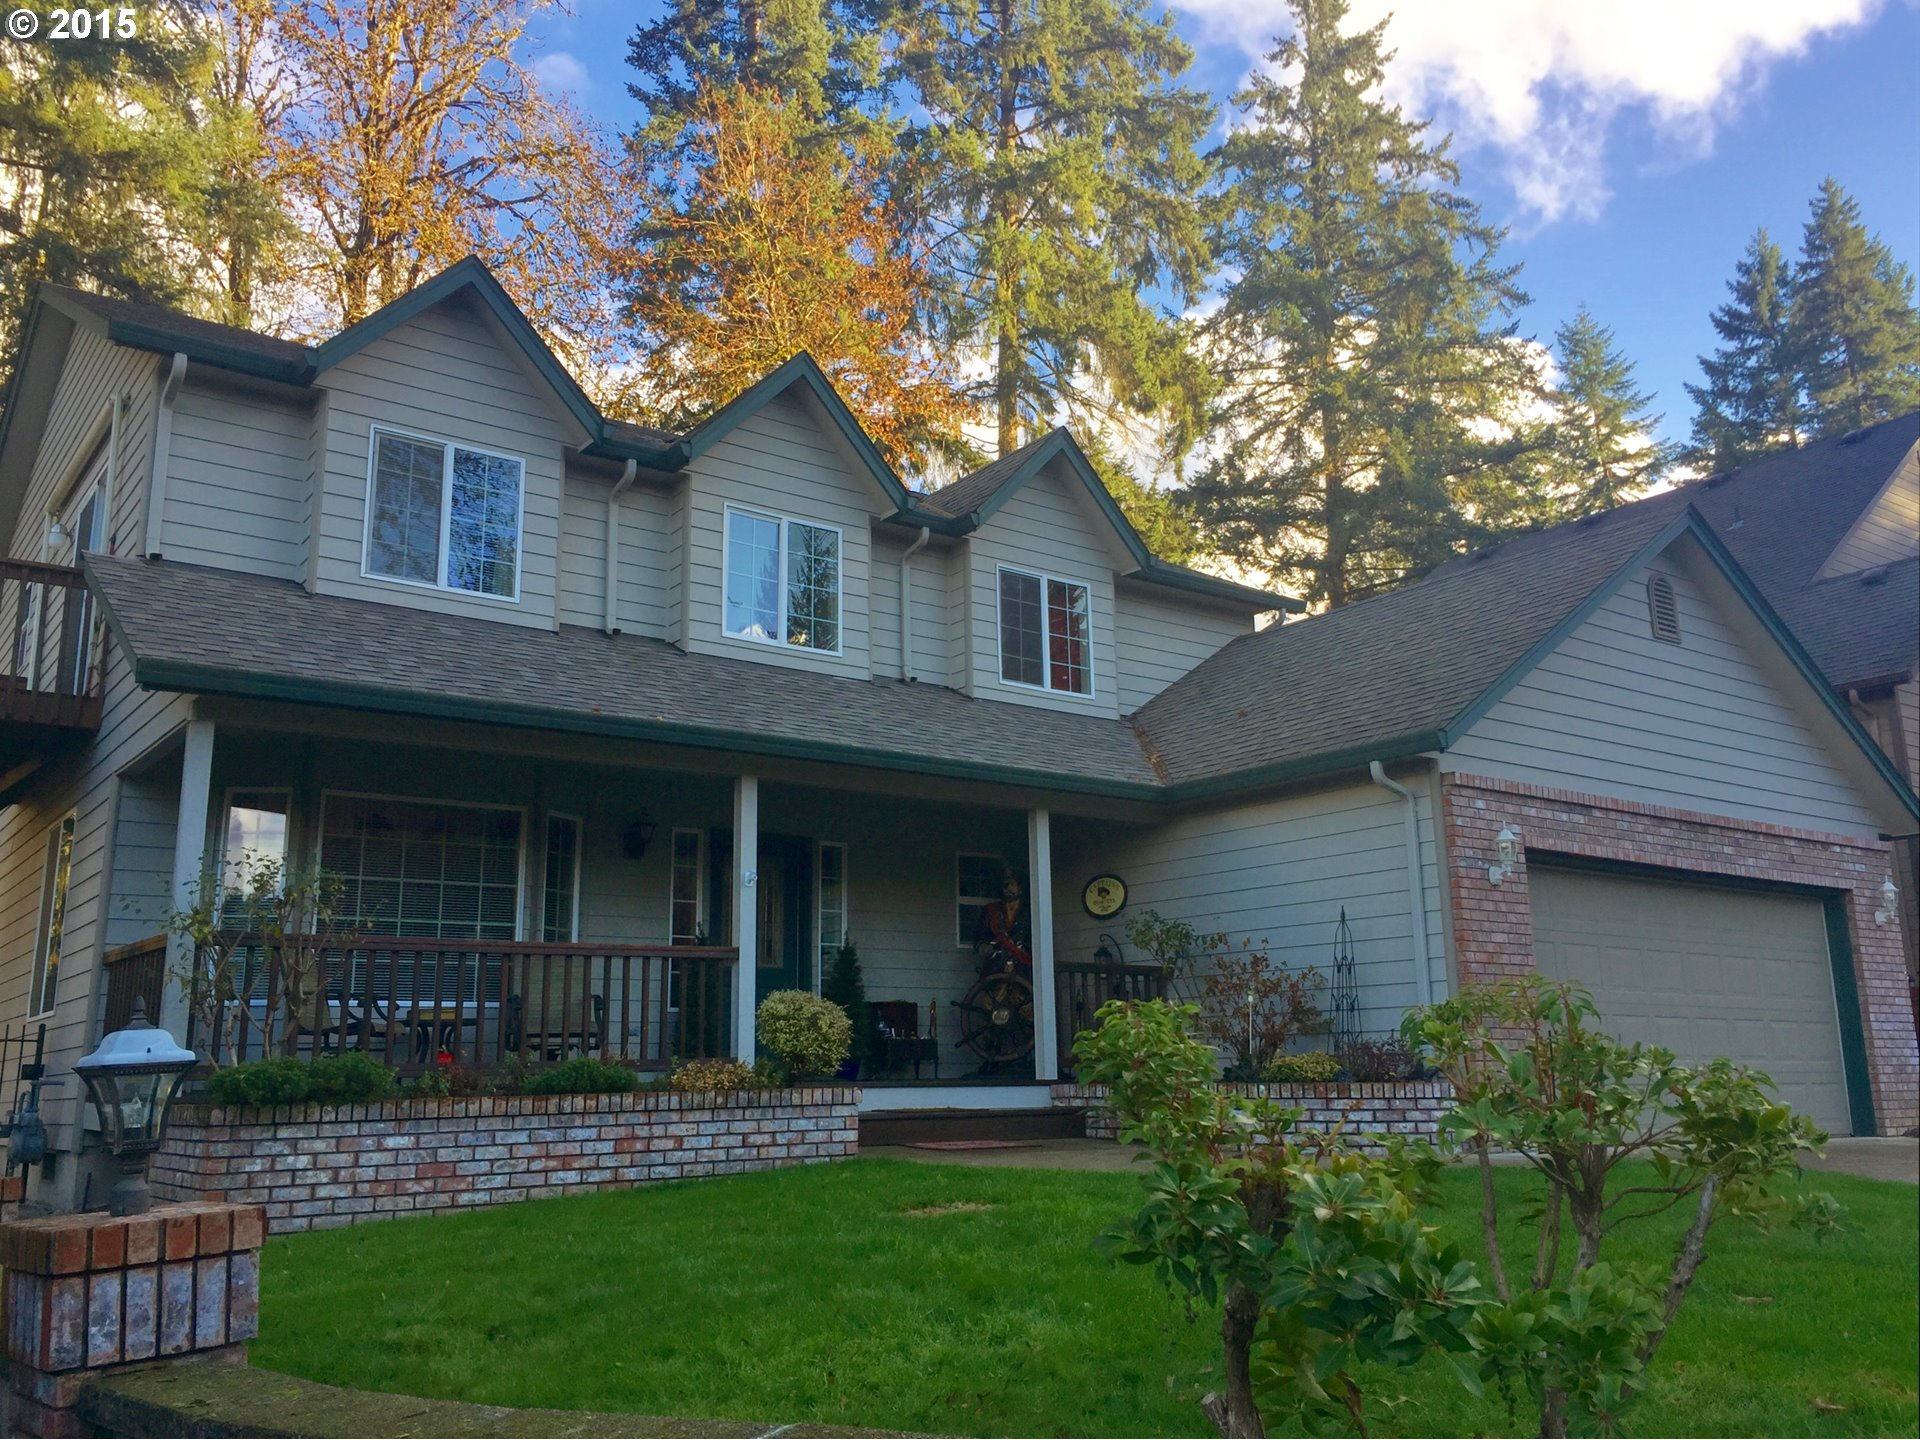 1145 S 69TH ST, Springfield OR 97478